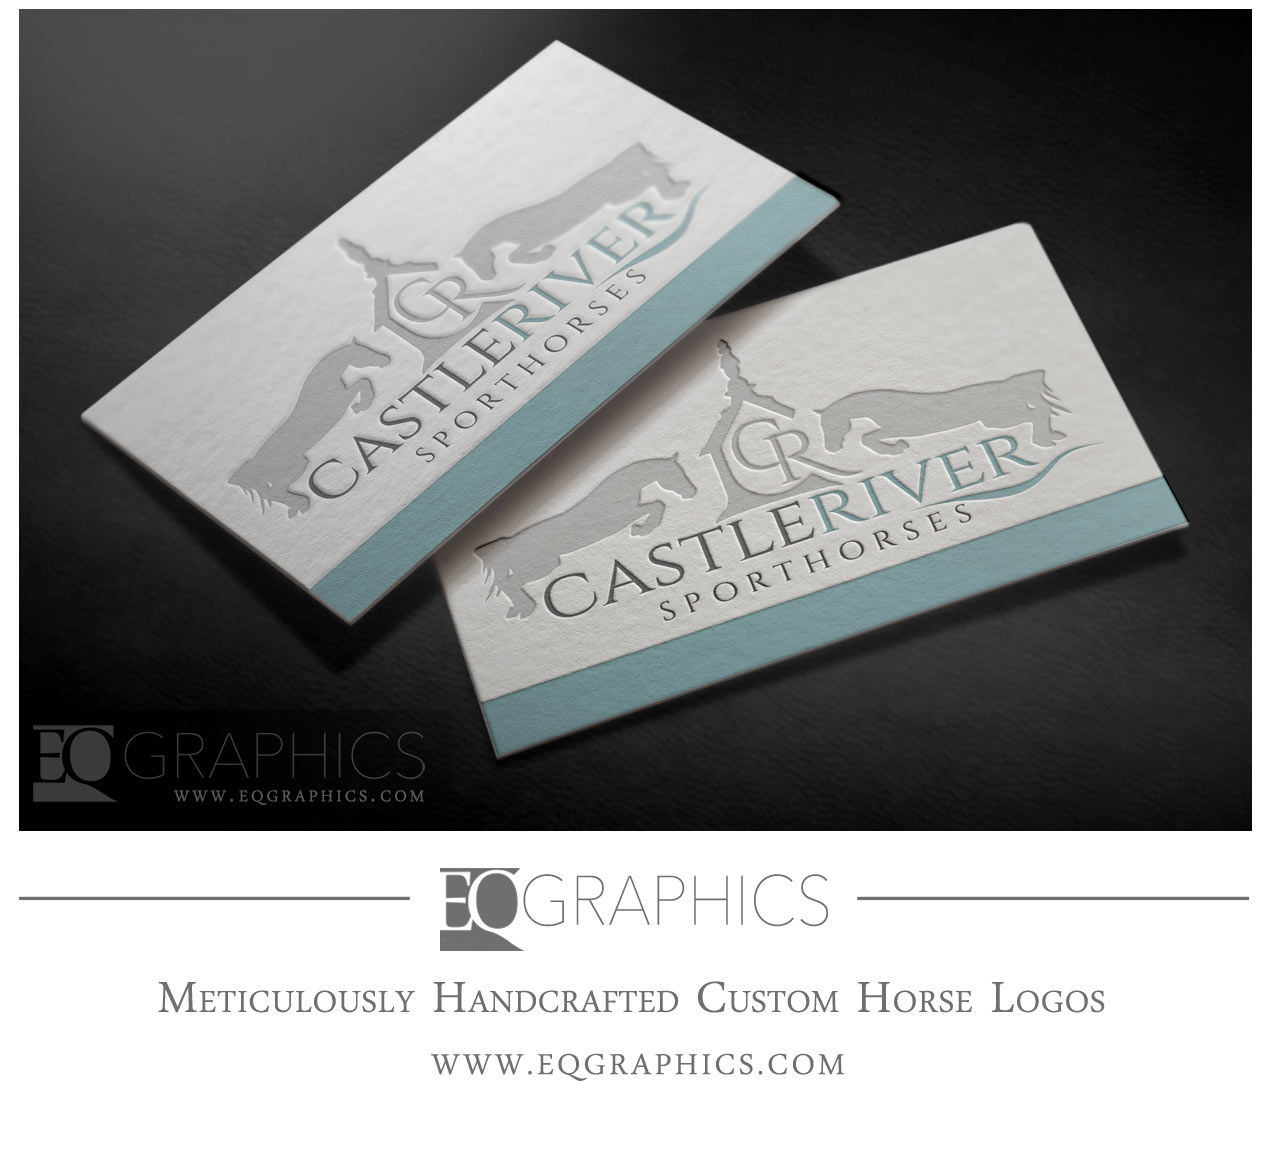 Castle River Sporthorses Show Jumping Logo by EQ Graphics Horse Logo Design